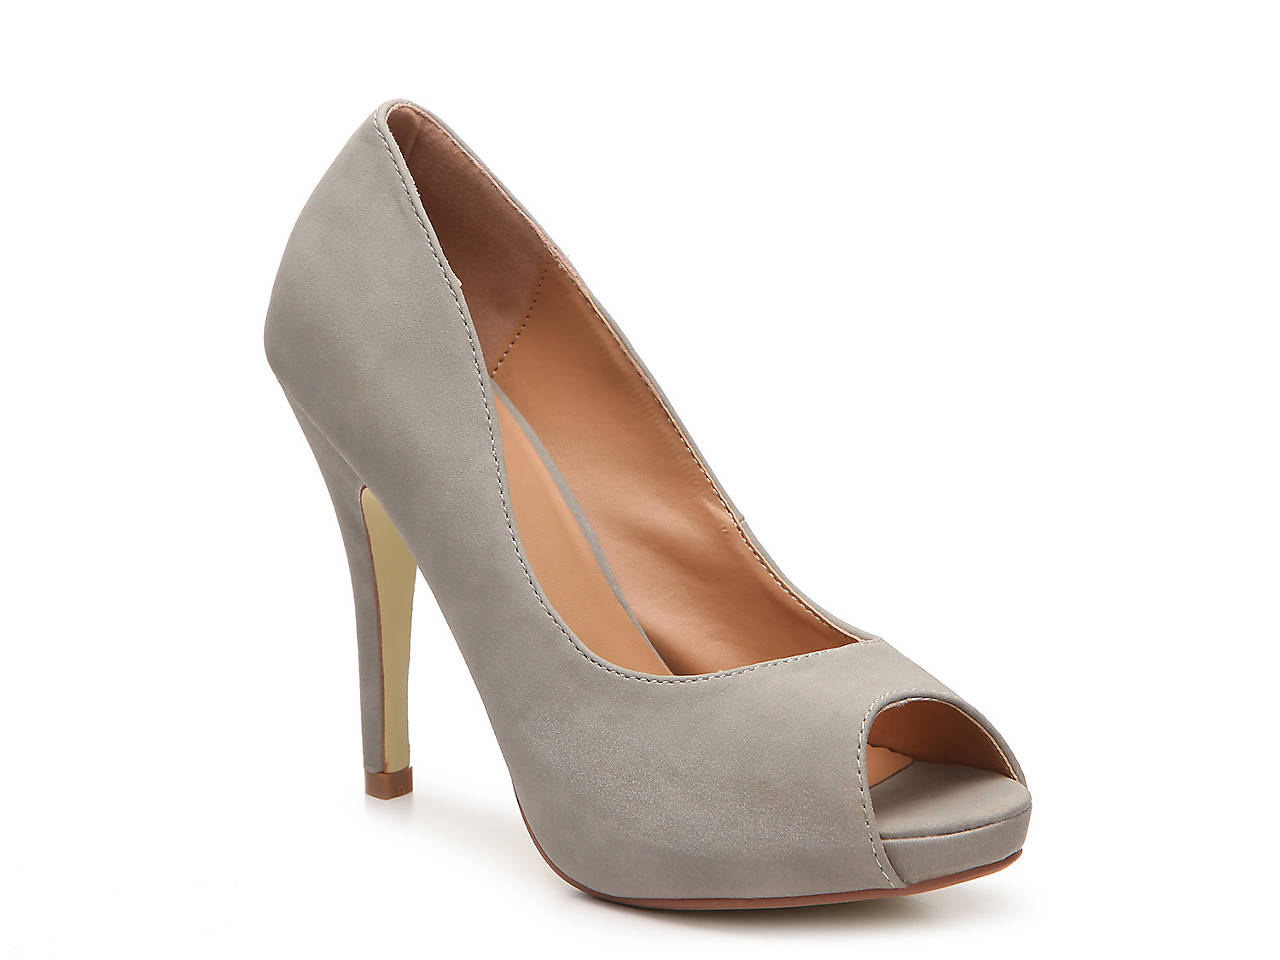 24645e1f73f9 Journee Collection Lois Platform Pump Women s Shoes